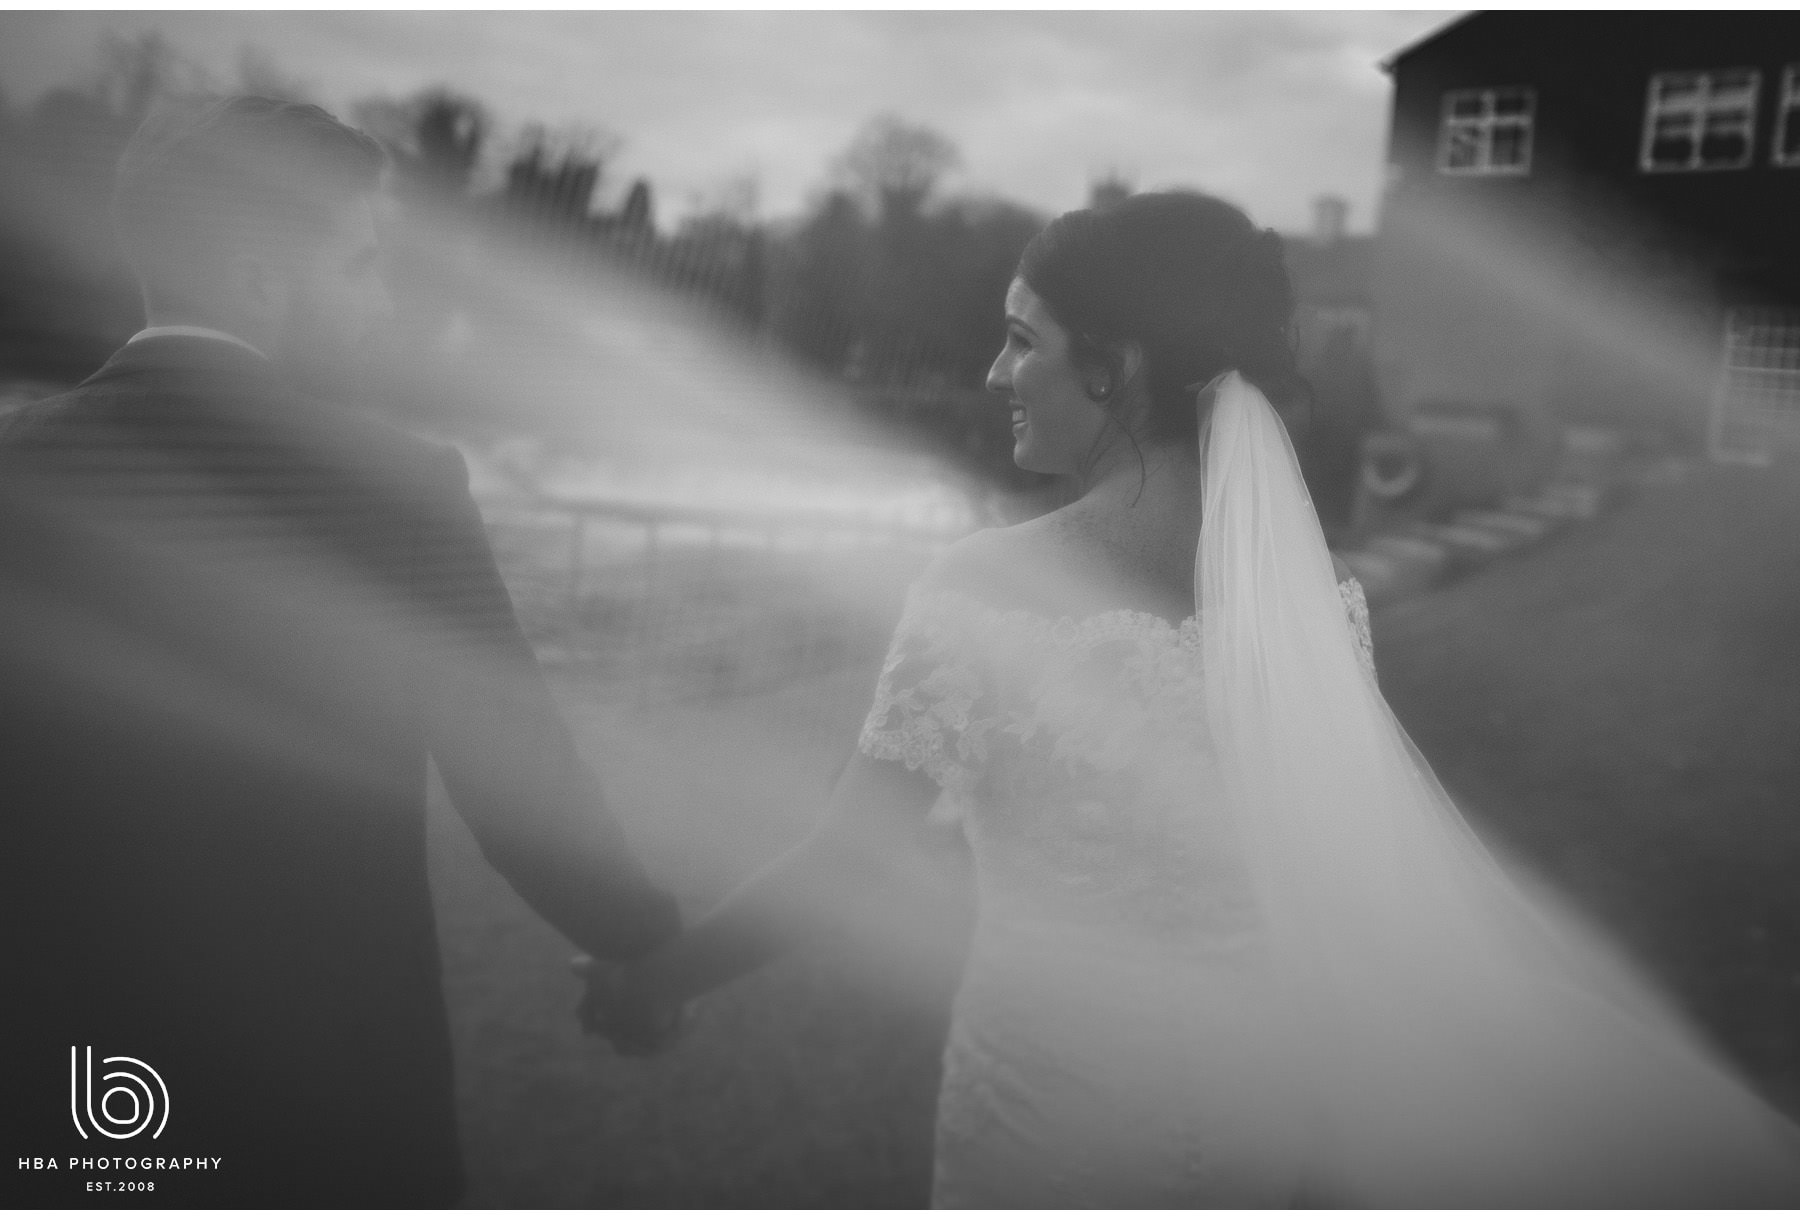 the bride and groom through the veil